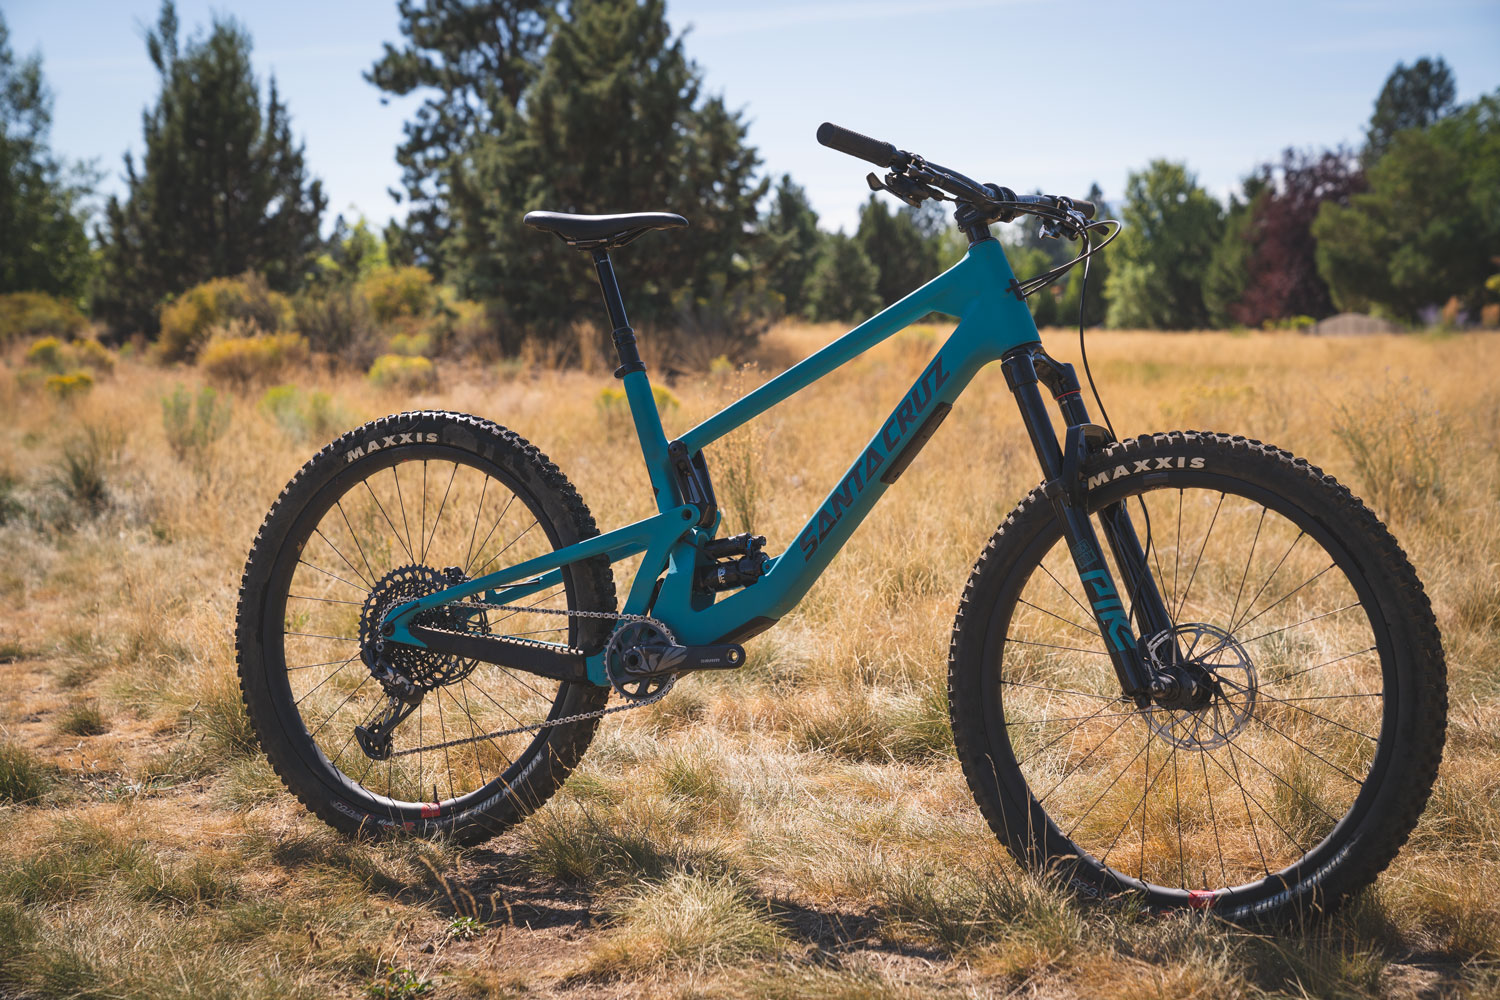 SANTA CRUZ 5010 CC XO1 REVIEW